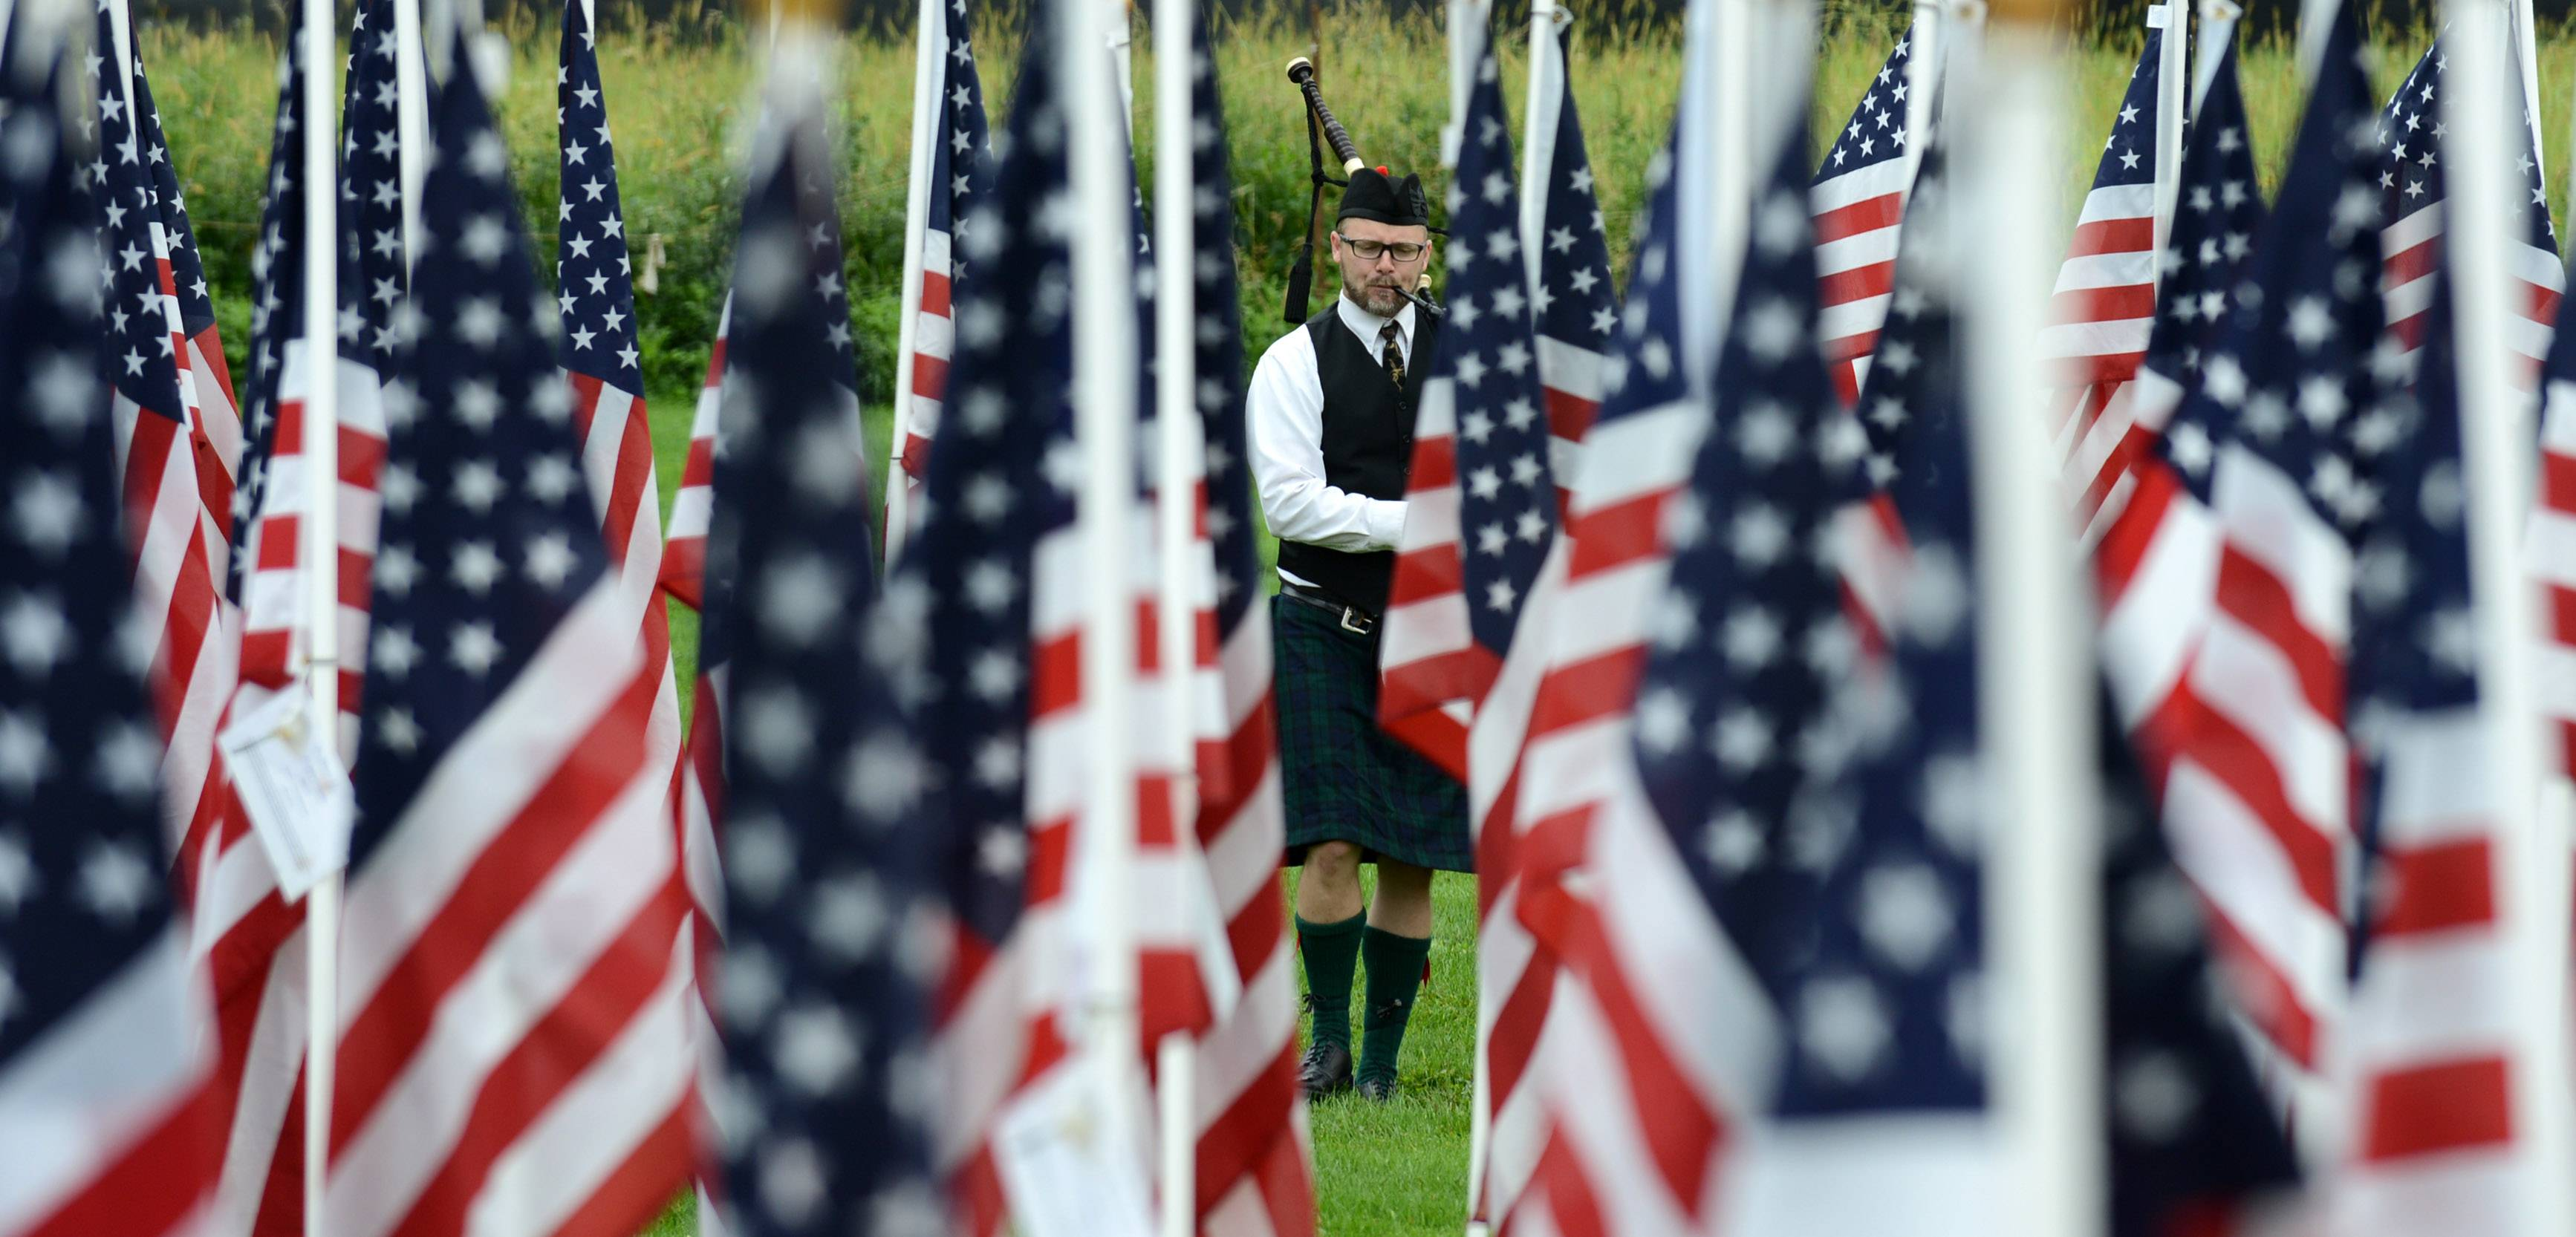 Bagpiper Adam Parchert of Carpentersville plays during a Sept. 11 remembrance ceremony at the Carpentersville Fire Department Friday.